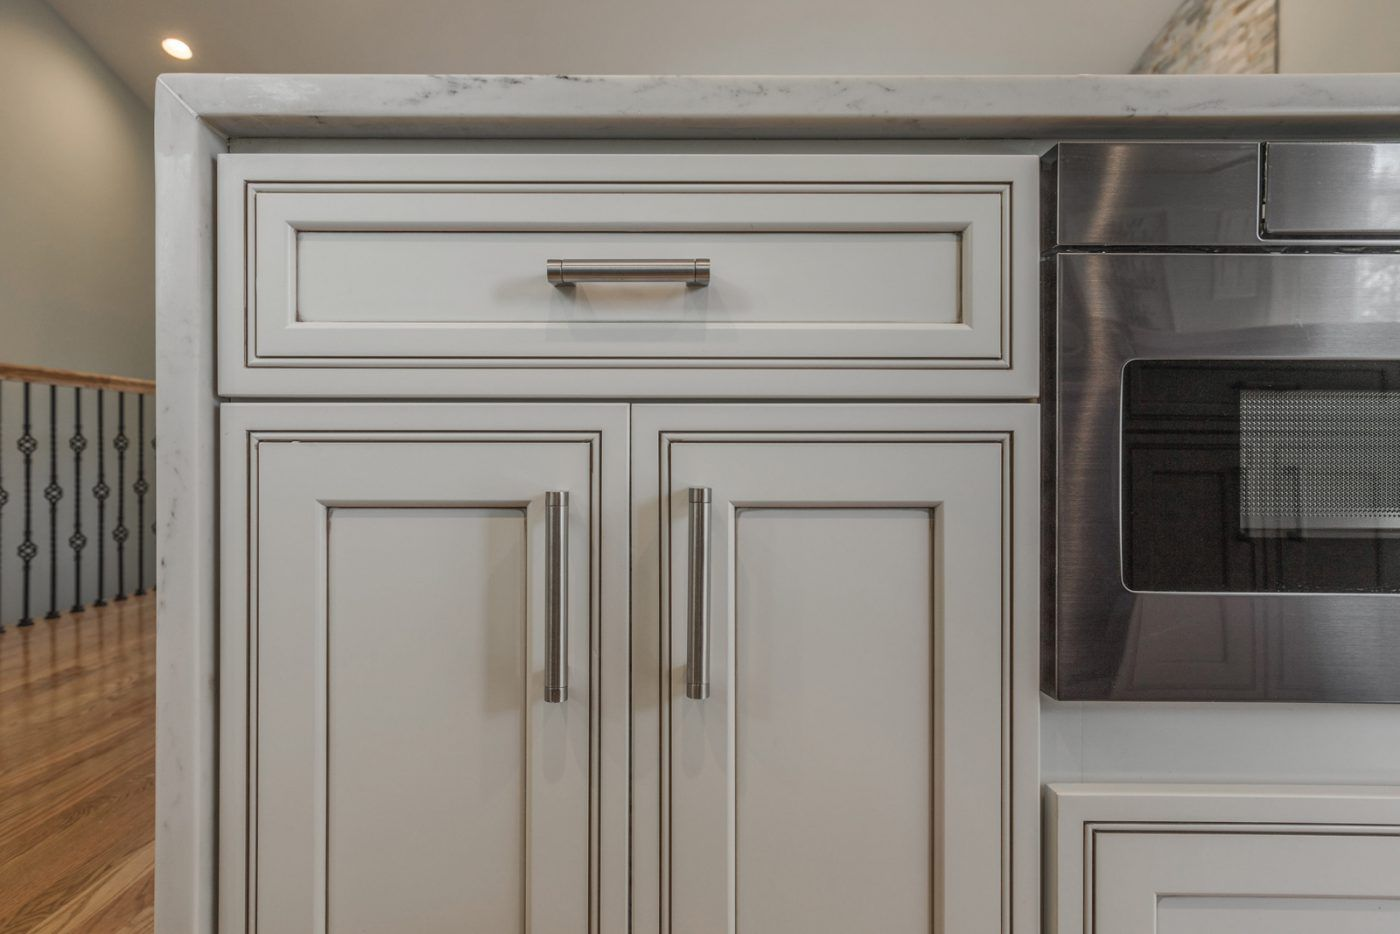 h9 pearl maple glaze collection j k cabinets kitchen remodel maple kitchen cabinets on j kitchen id=52360